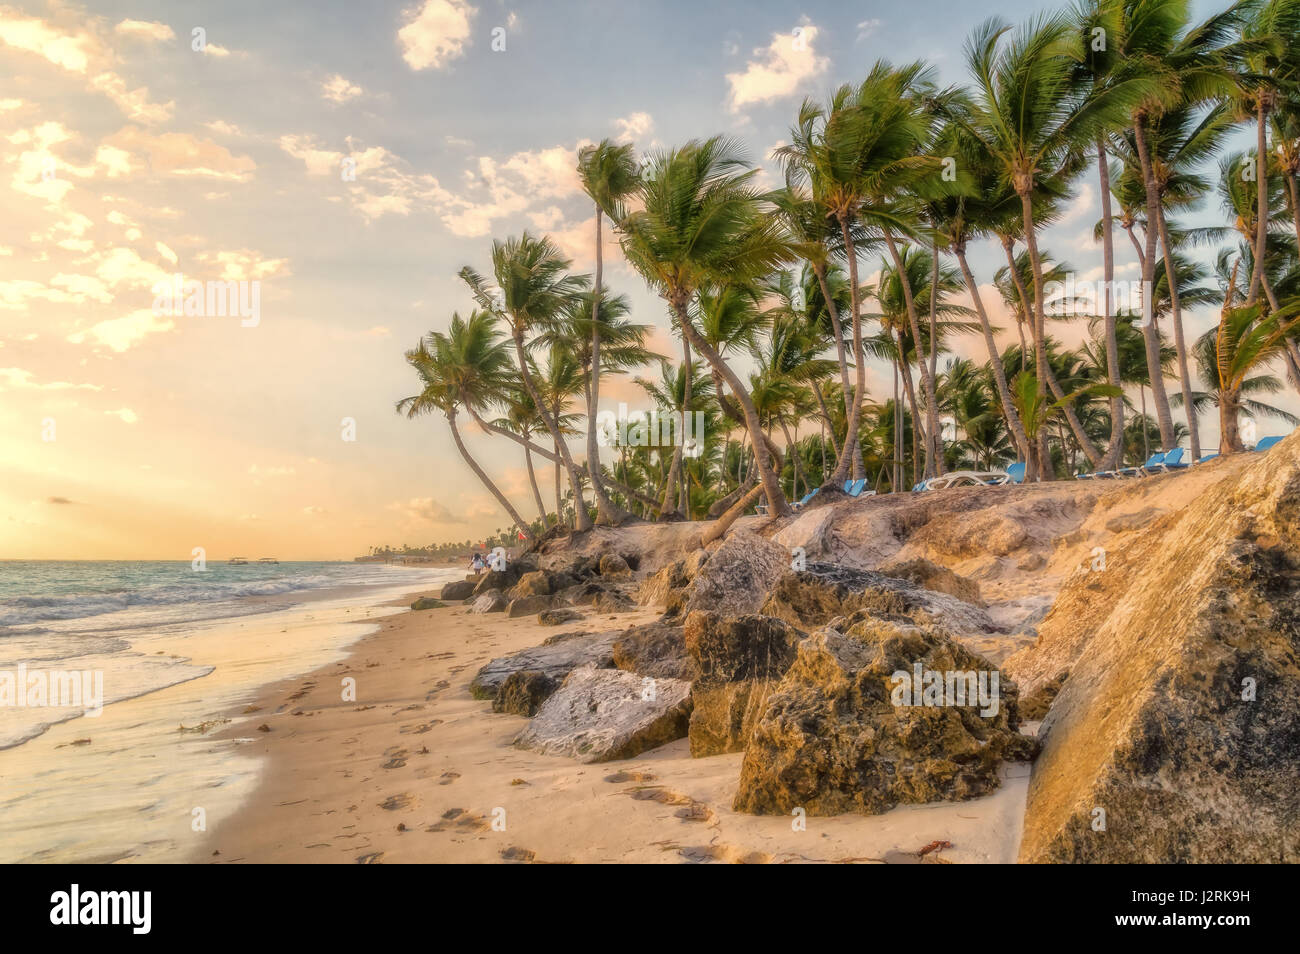 Morning in Punta Cana. Stock Photo